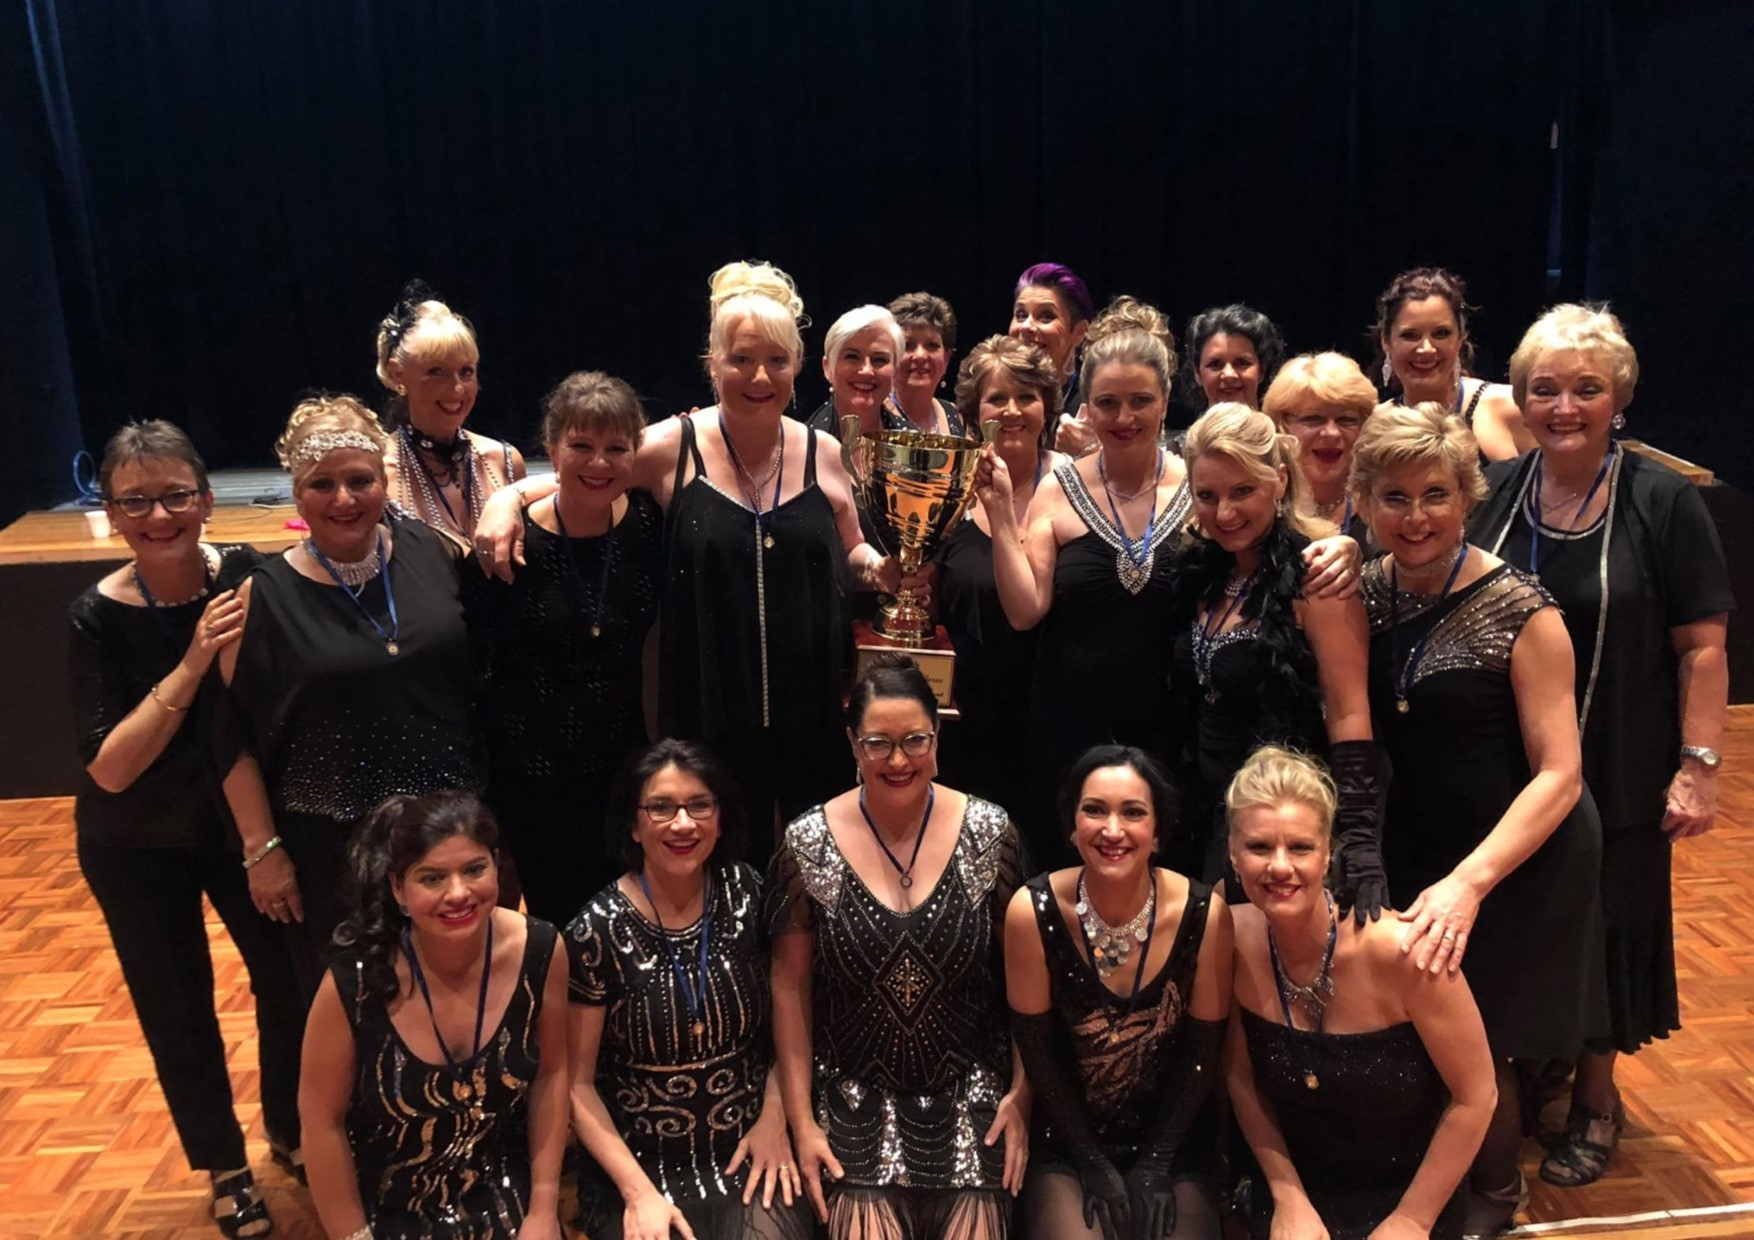 Liz Whitelaw (front row, second from left) with A Capella West, soon to represent Australia in New Orleans.